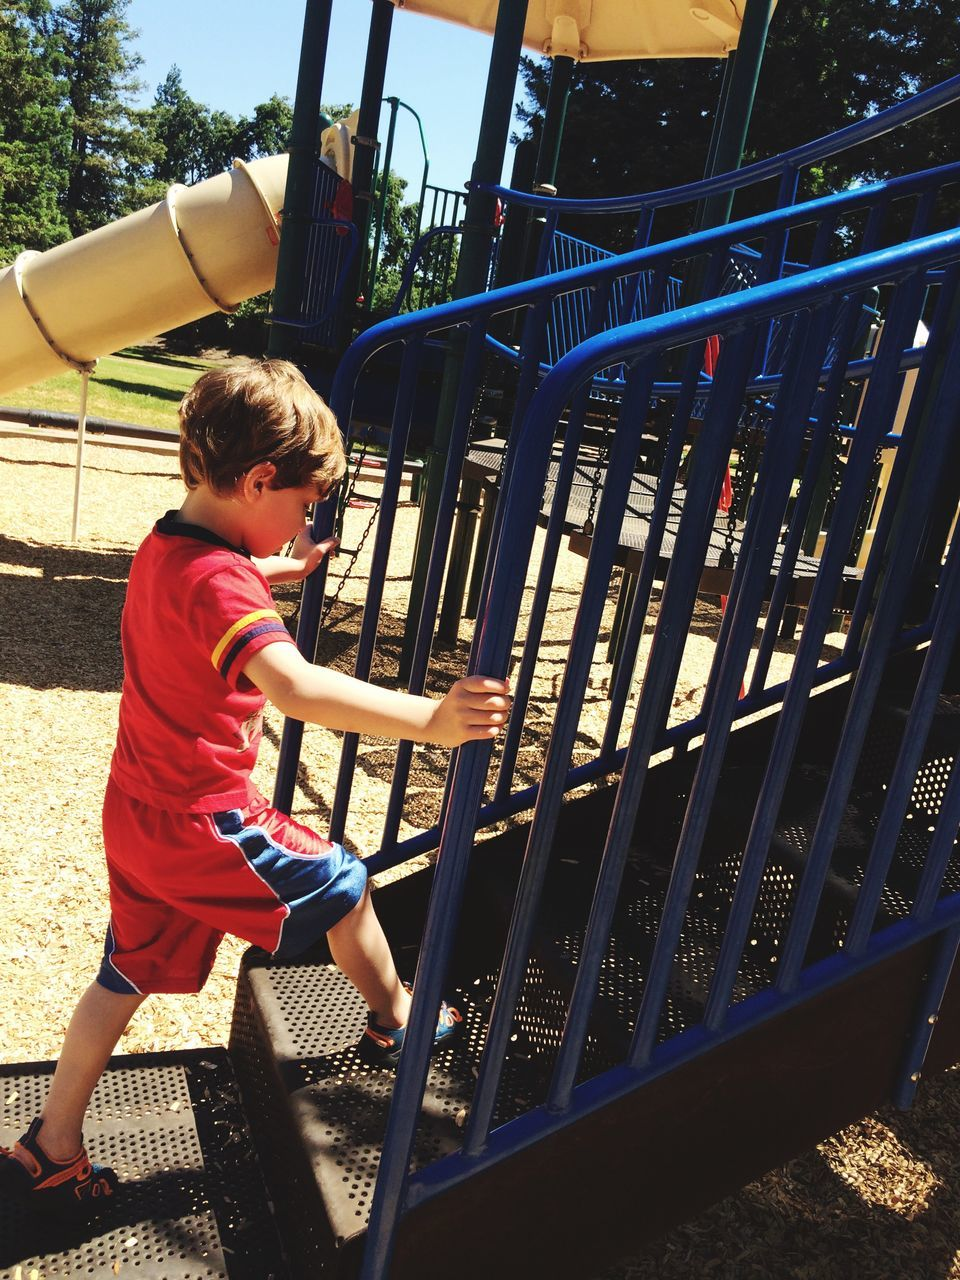 childhood, boys, full length, one person, real people, playground, elementary age, playing, casual clothing, leisure activity, side view, day, outdoors, jungle gym, outdoor play equipment, lifestyles